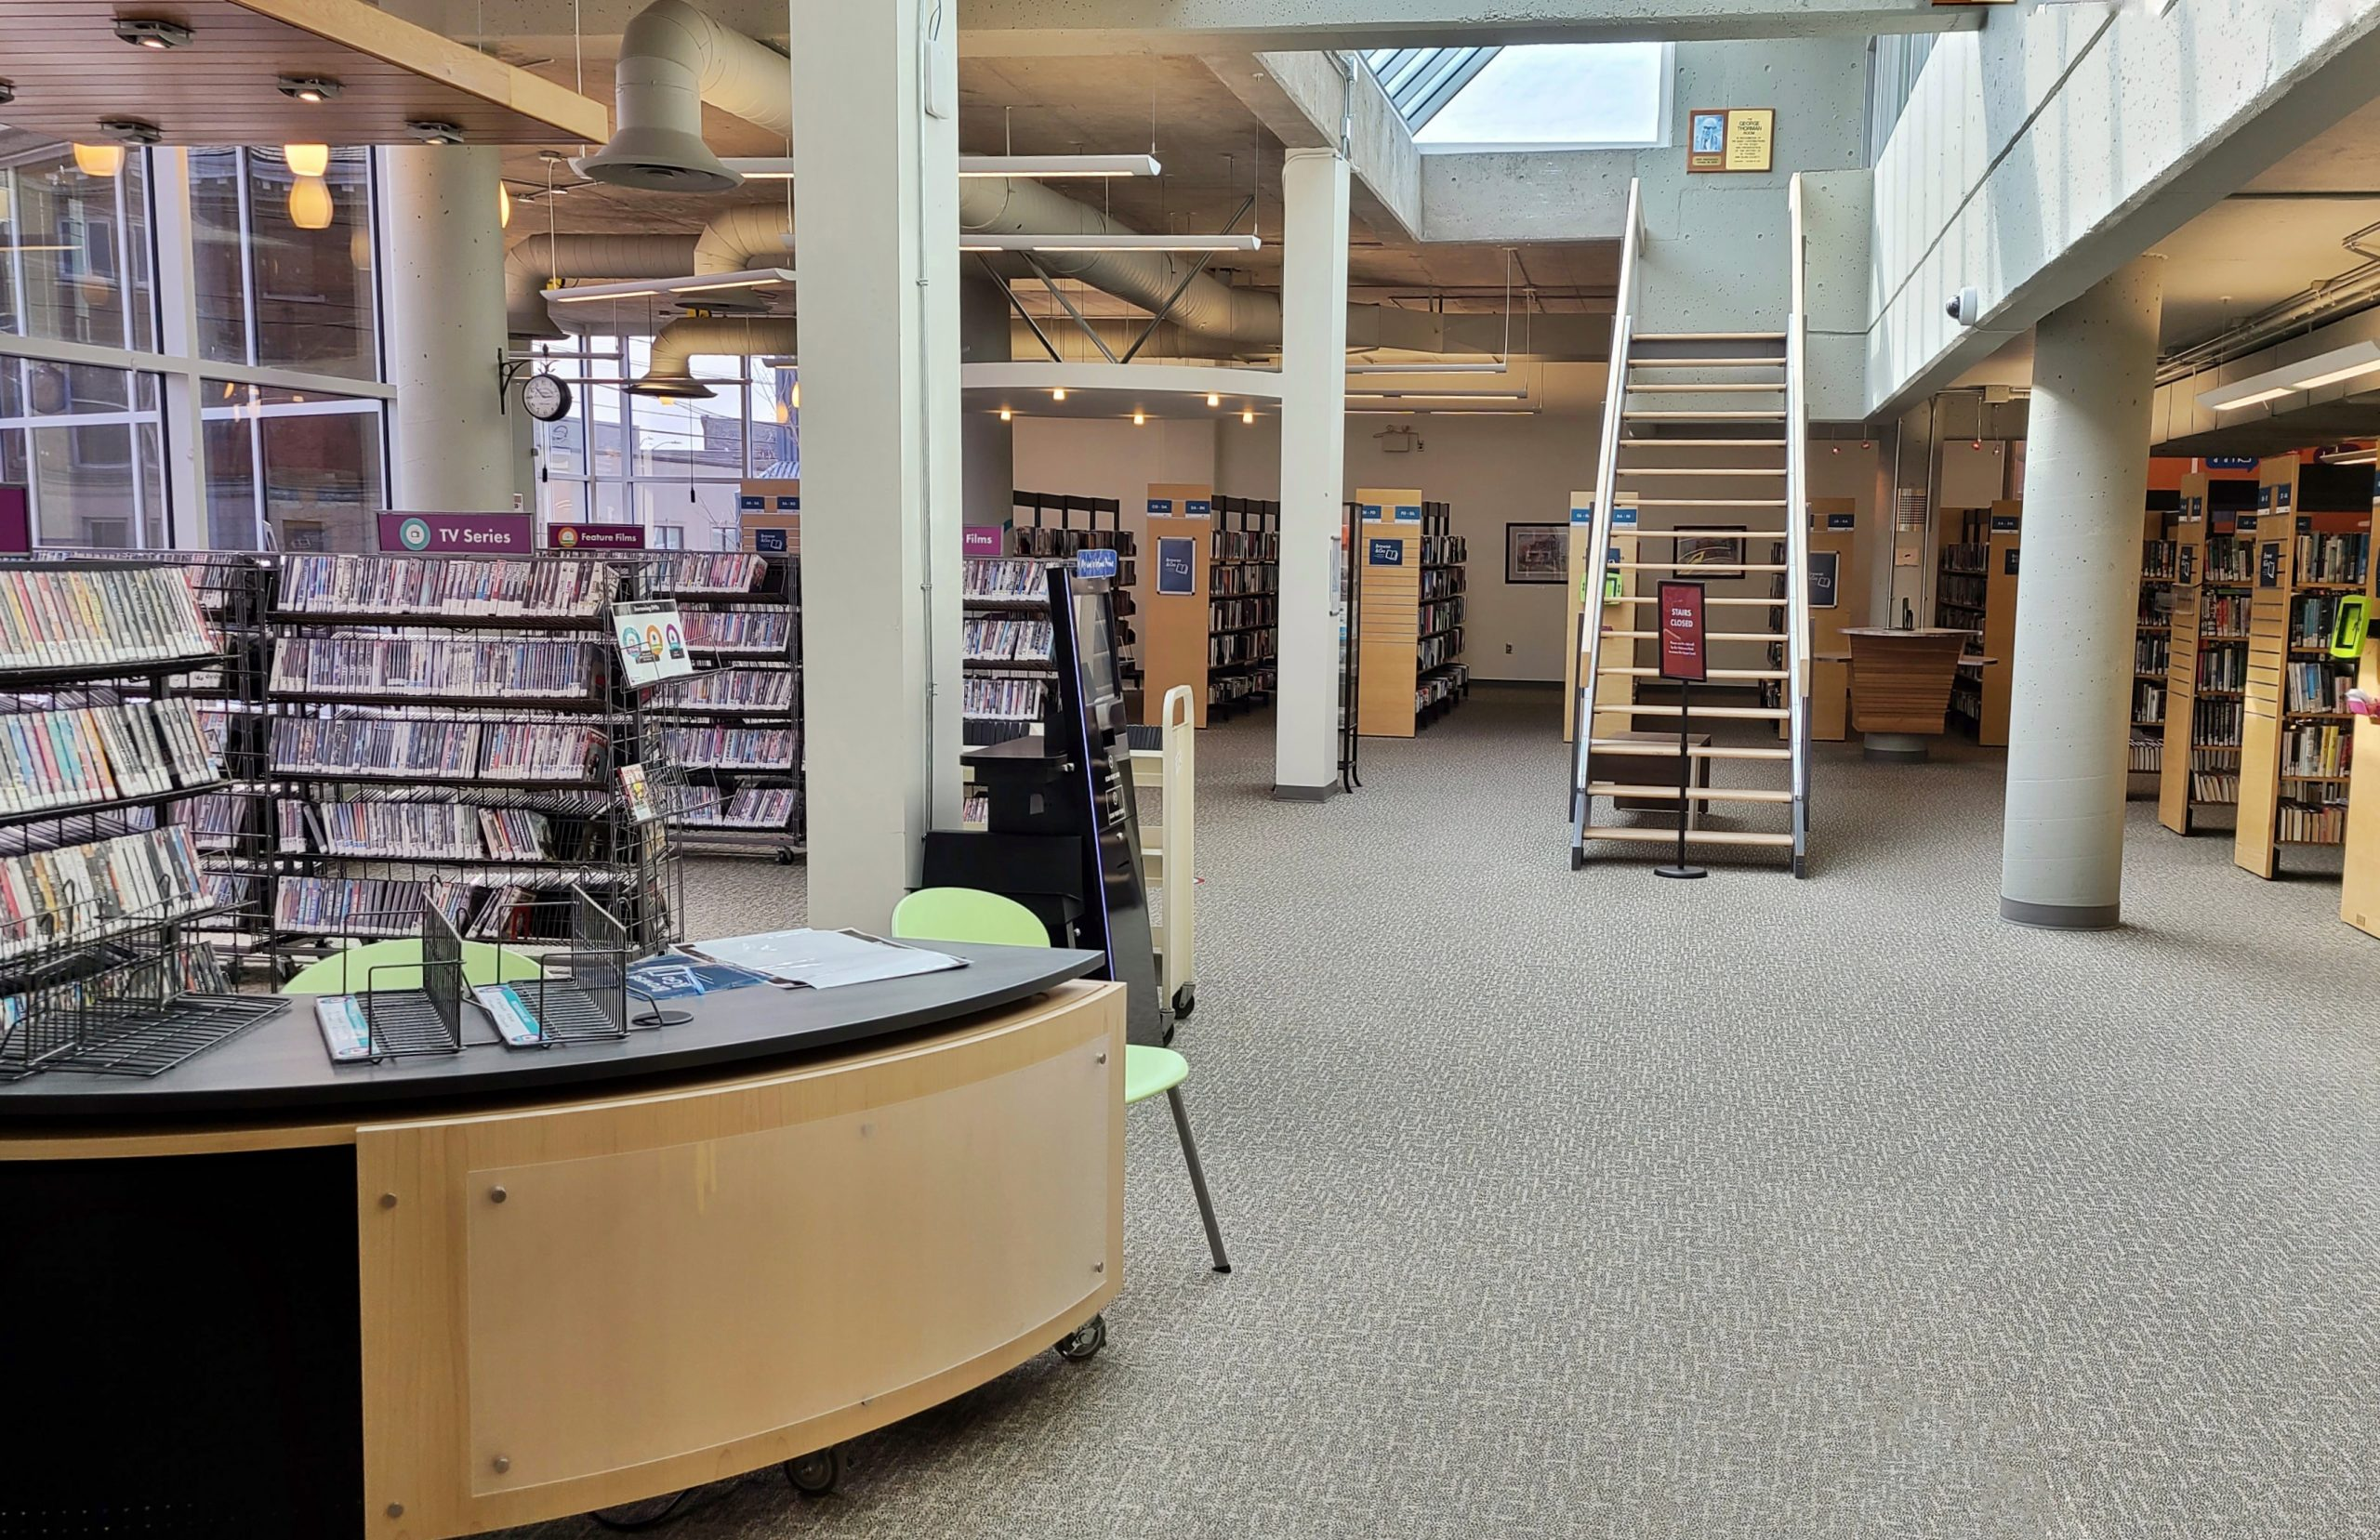 library service desk with bookshelves and rows of dvds behind it